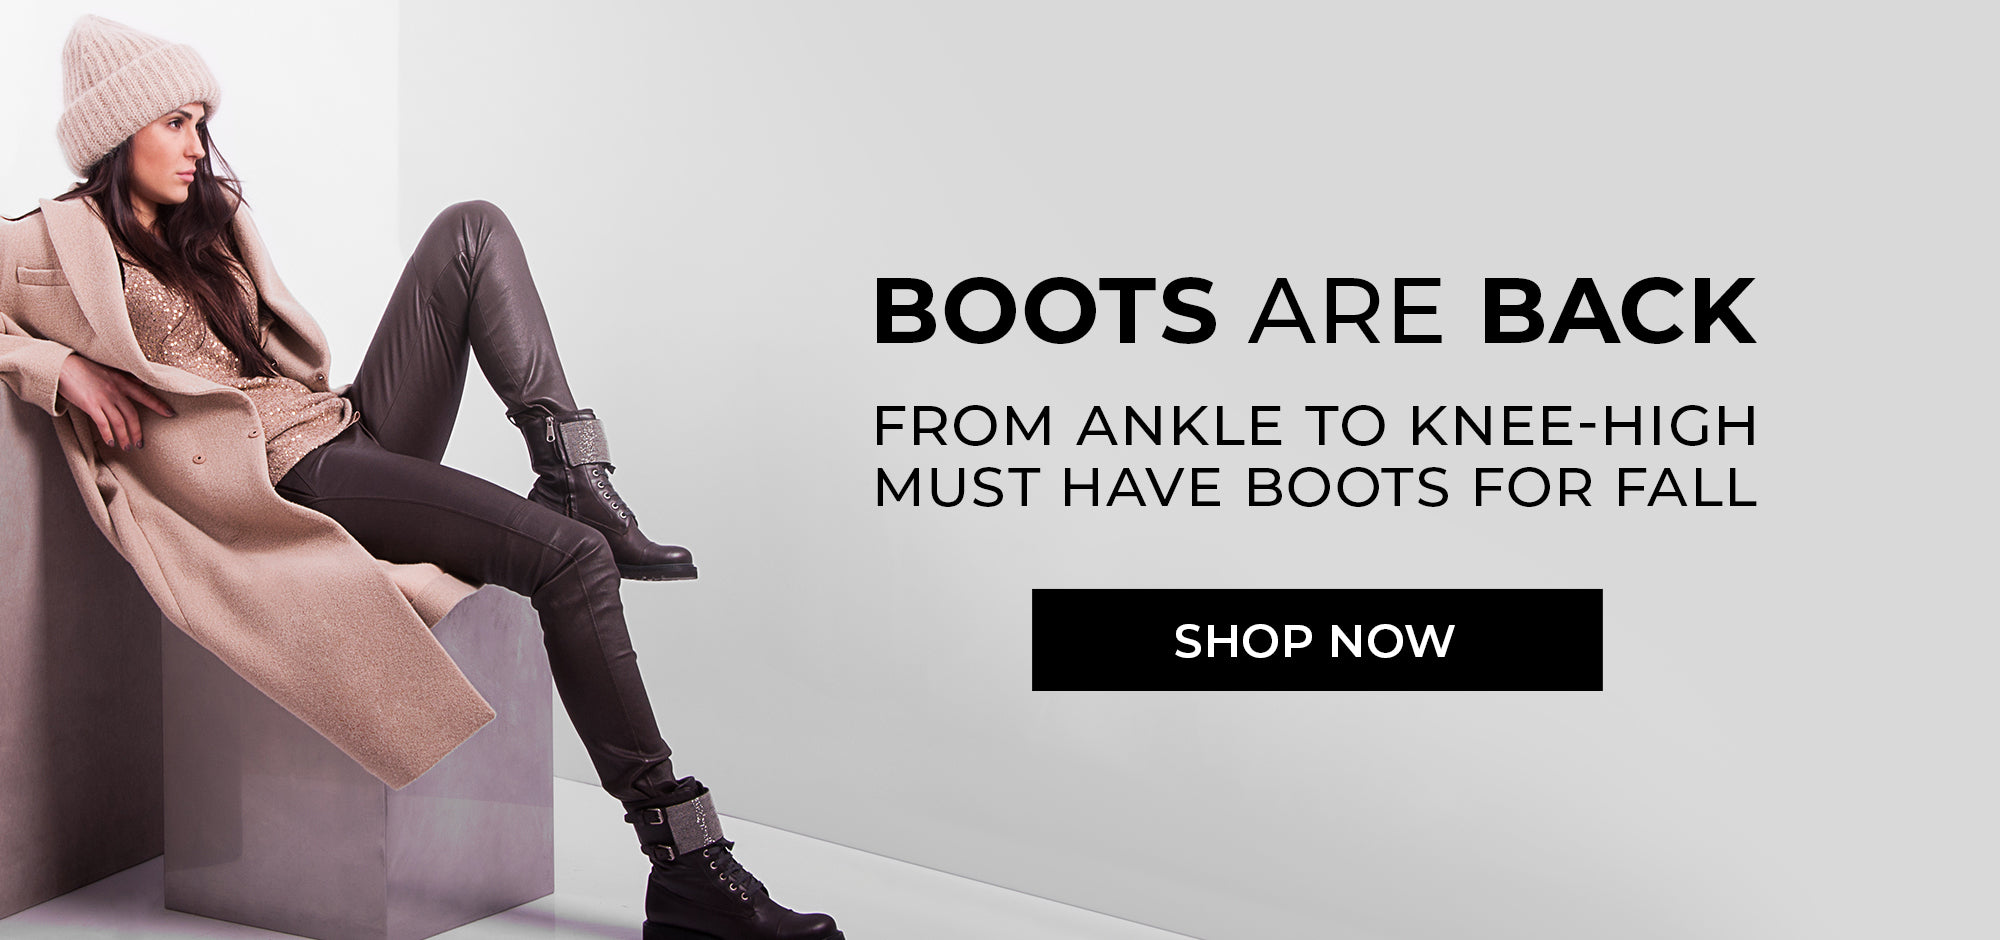 Boots are back